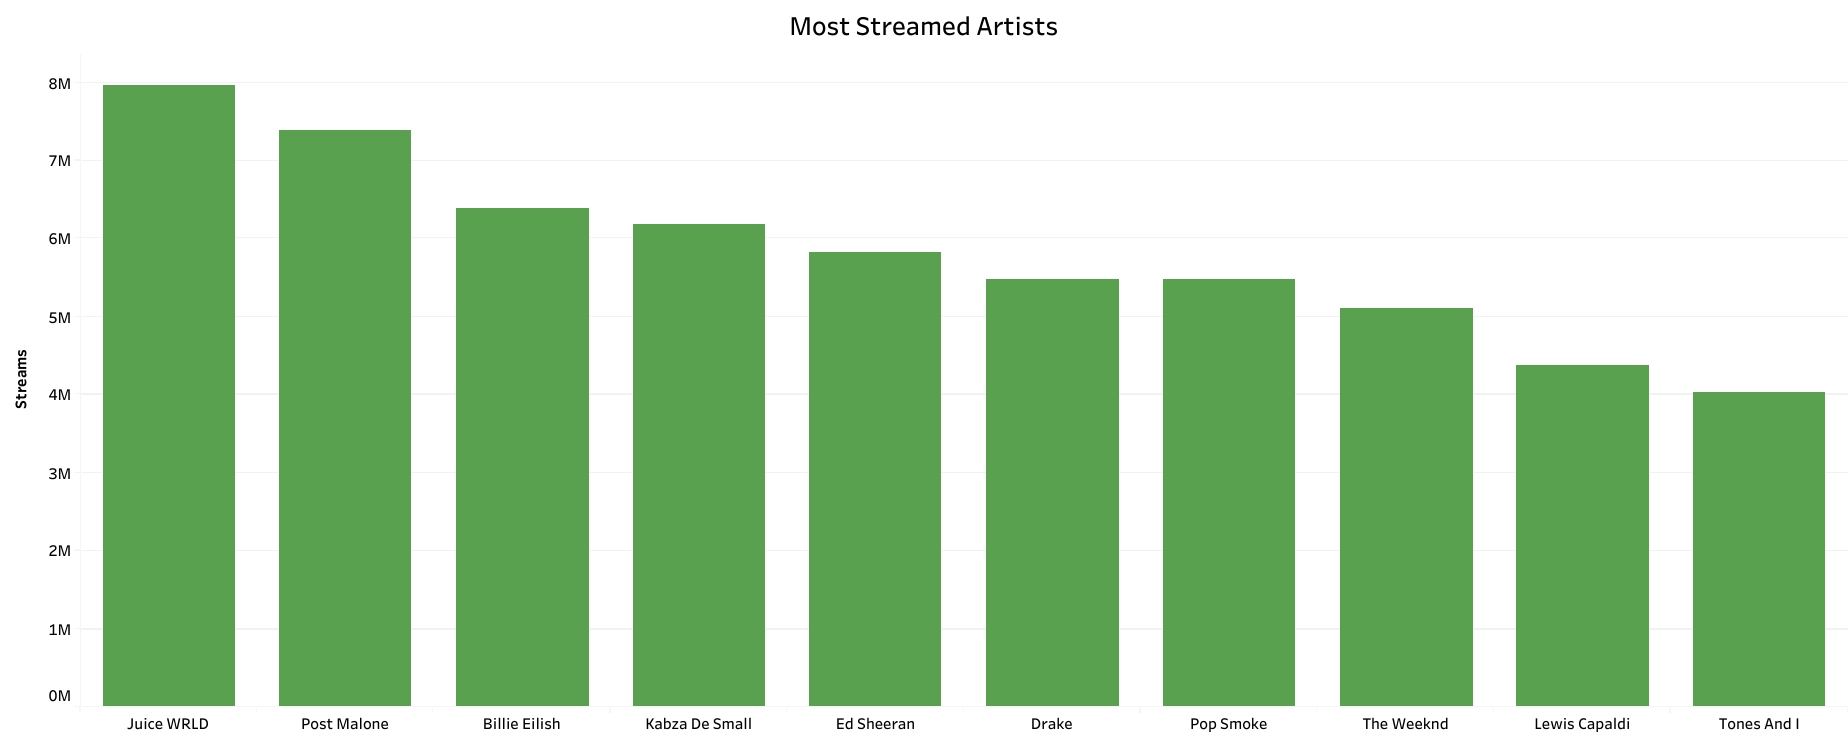 Most Streamed Artists in South Africa